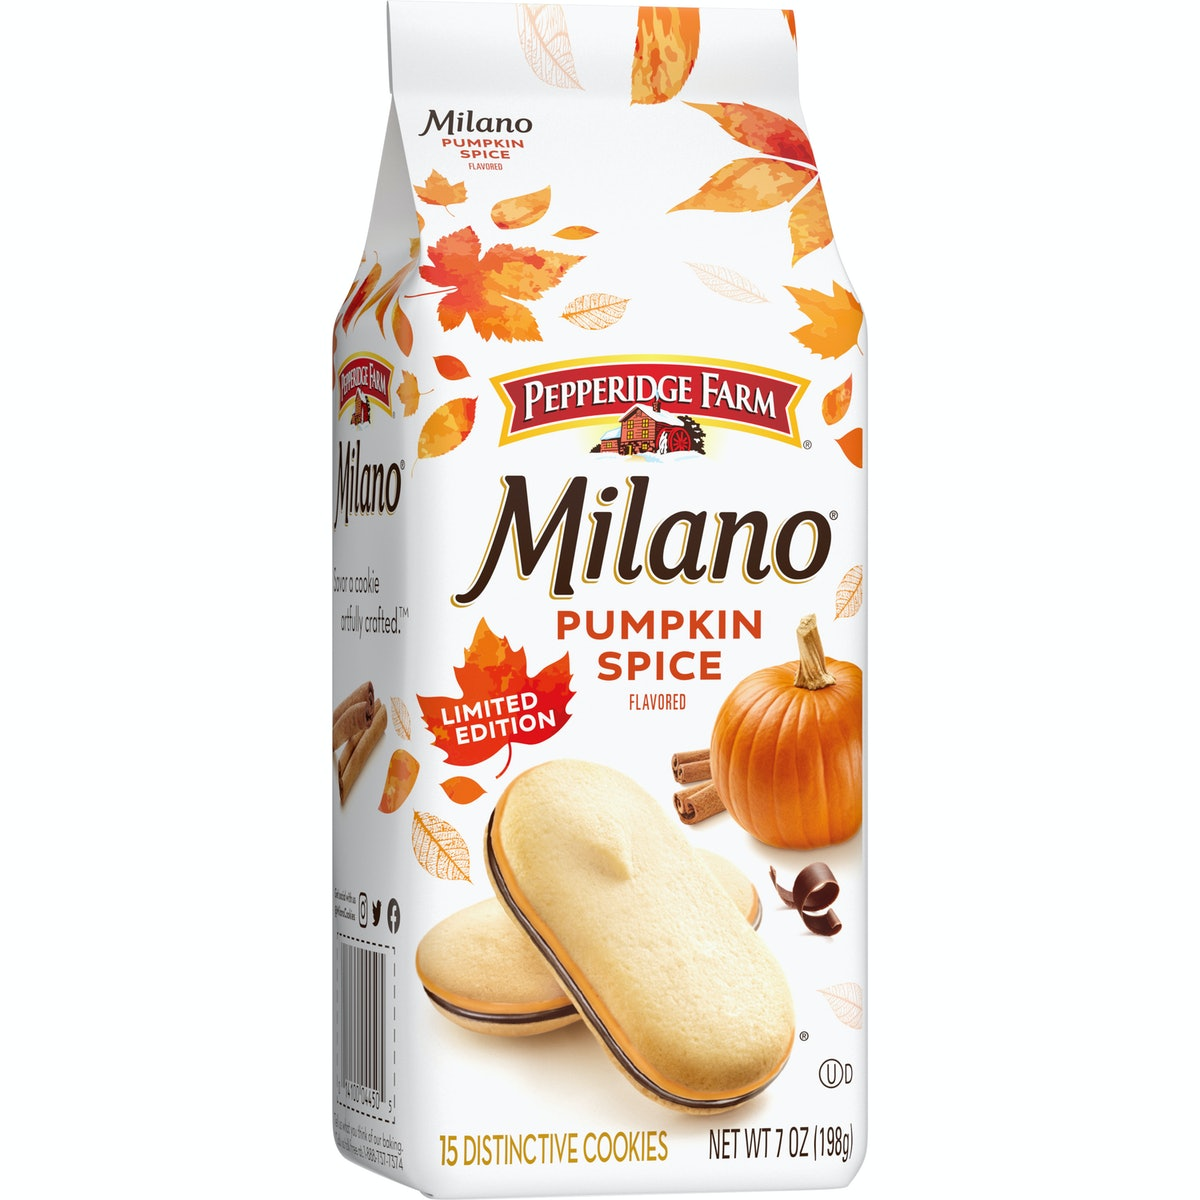 Pumpkin Spice Milanos are coming back for 2020 to help you celebrate fall.